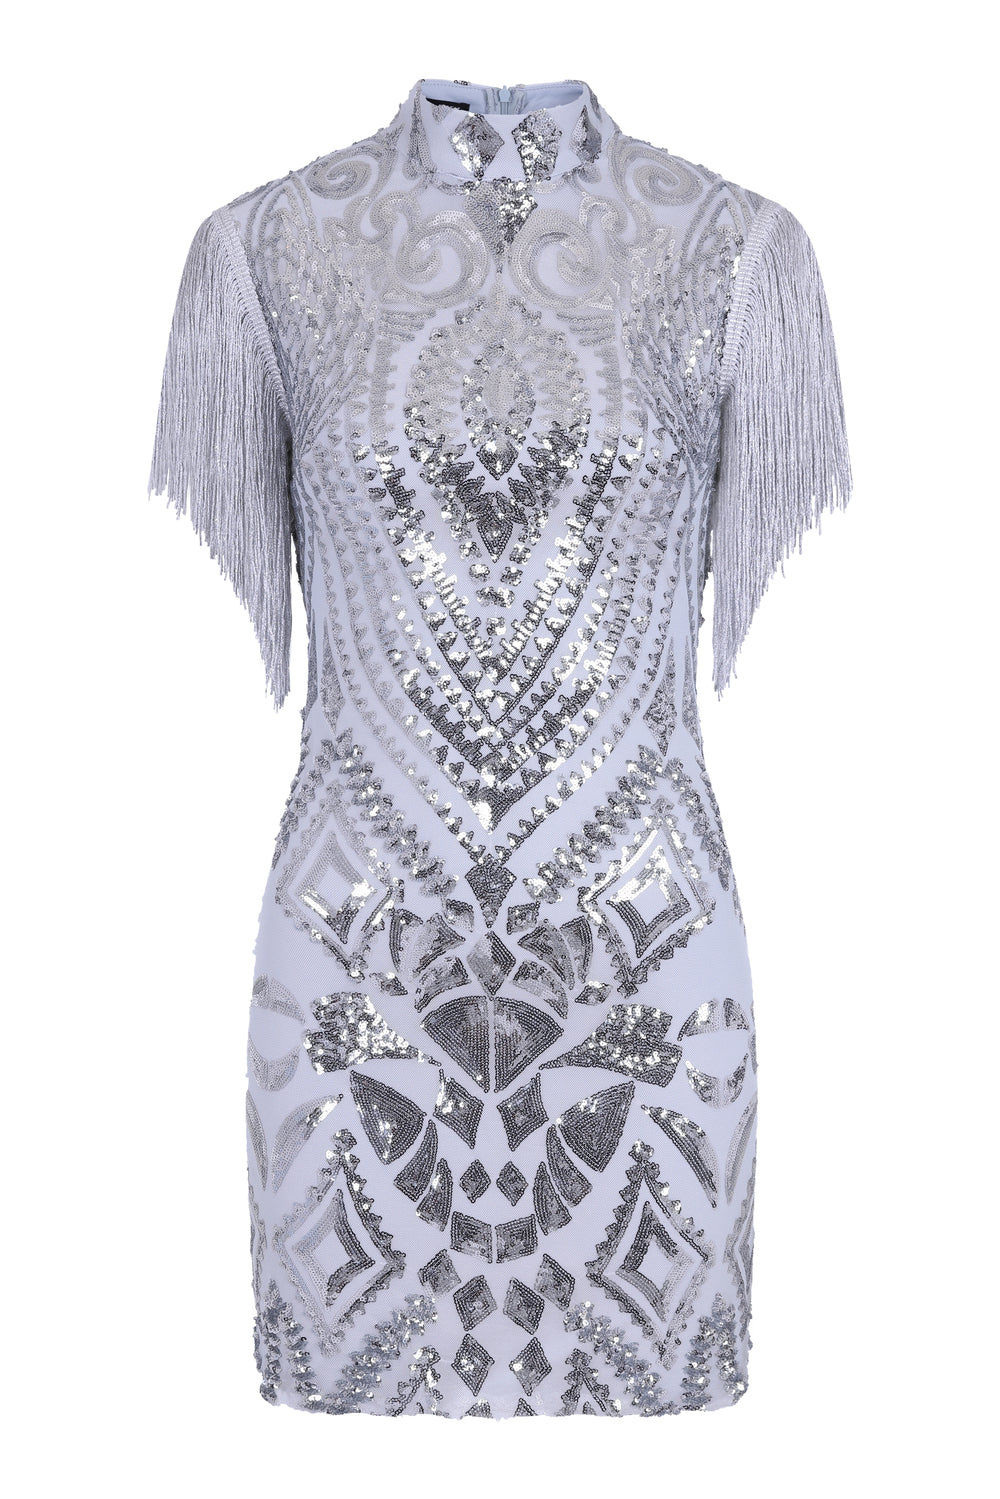 Kylie Vip Silver Luxe Tassel Fringe Sequin Embellished Illusion Dress